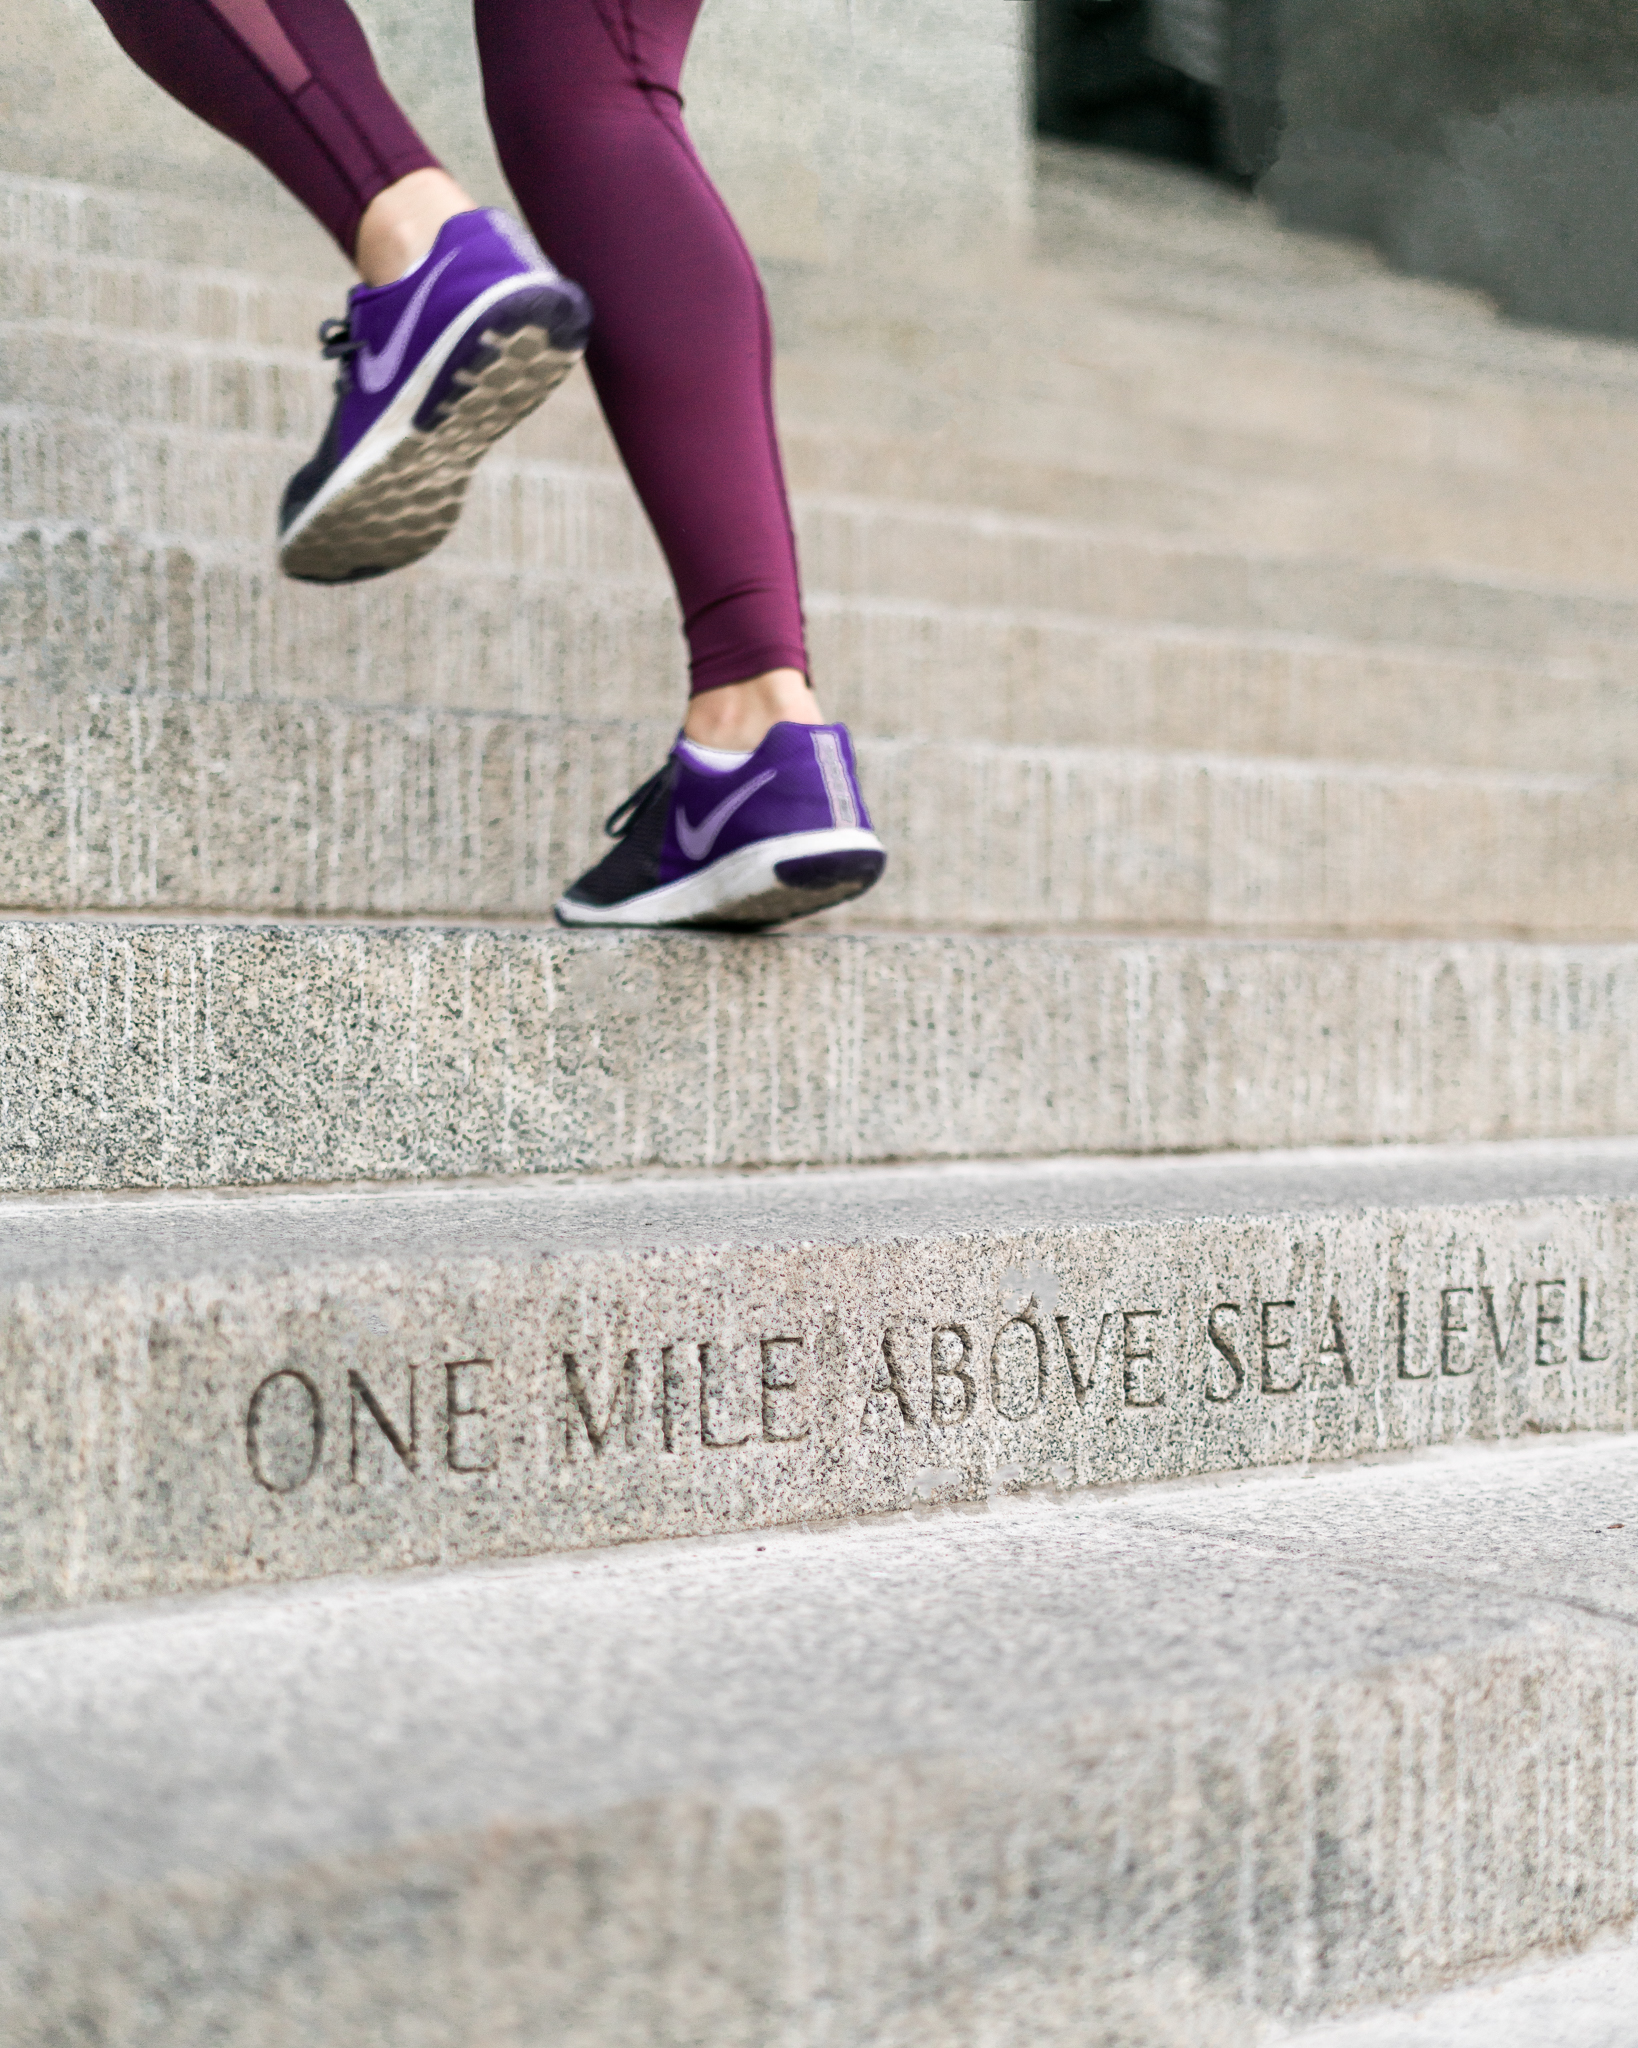 Running-Mile-High-Denver-Stairs.jpg